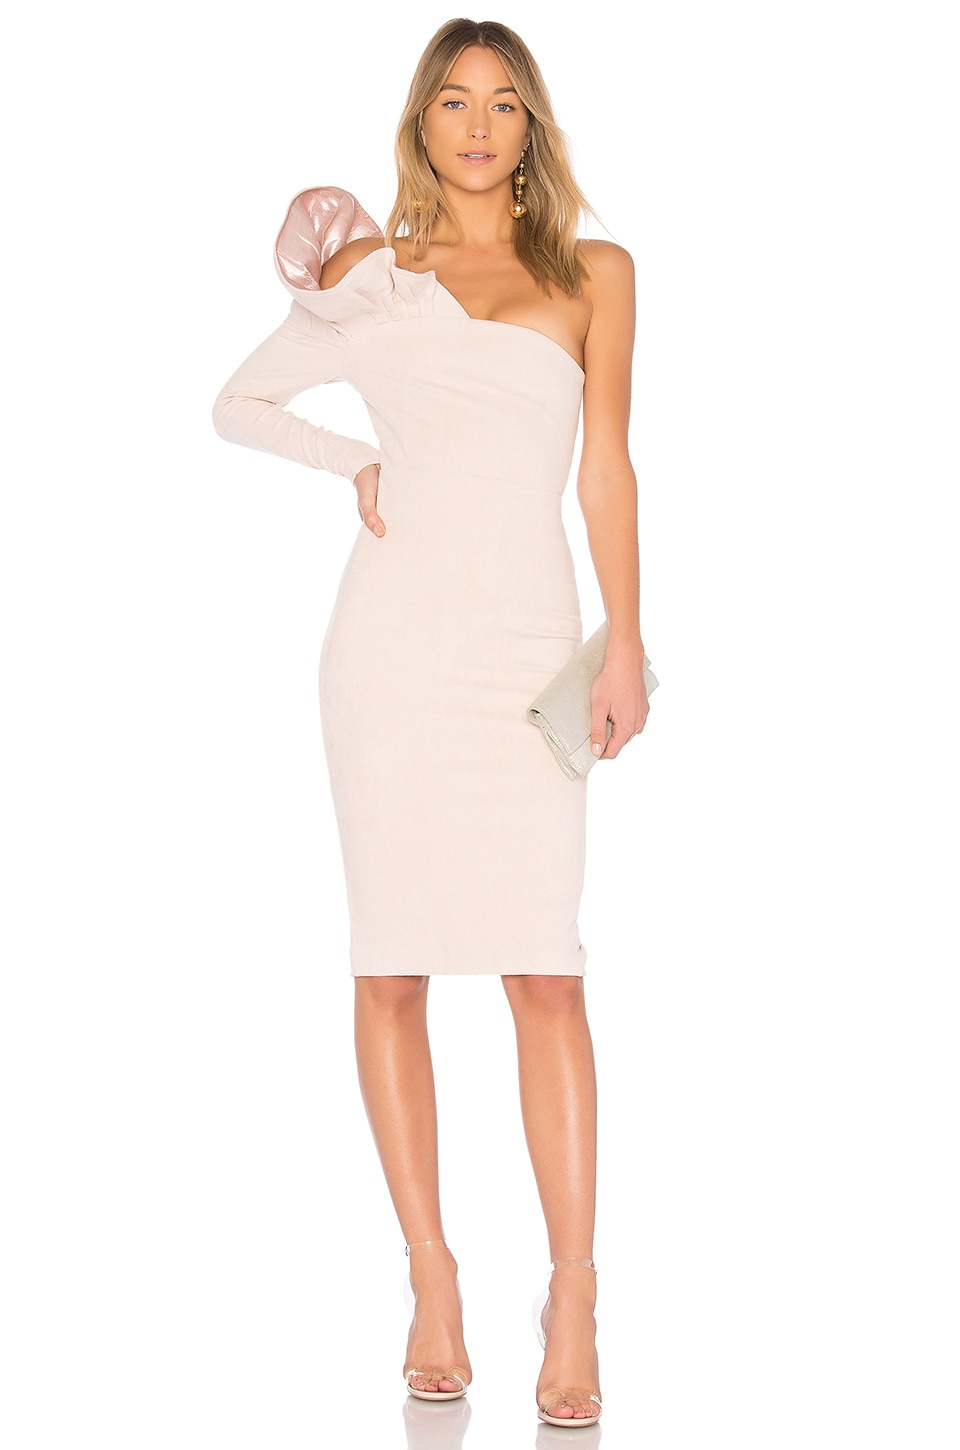 ASILIO First Heart Dress in Dusty Pink